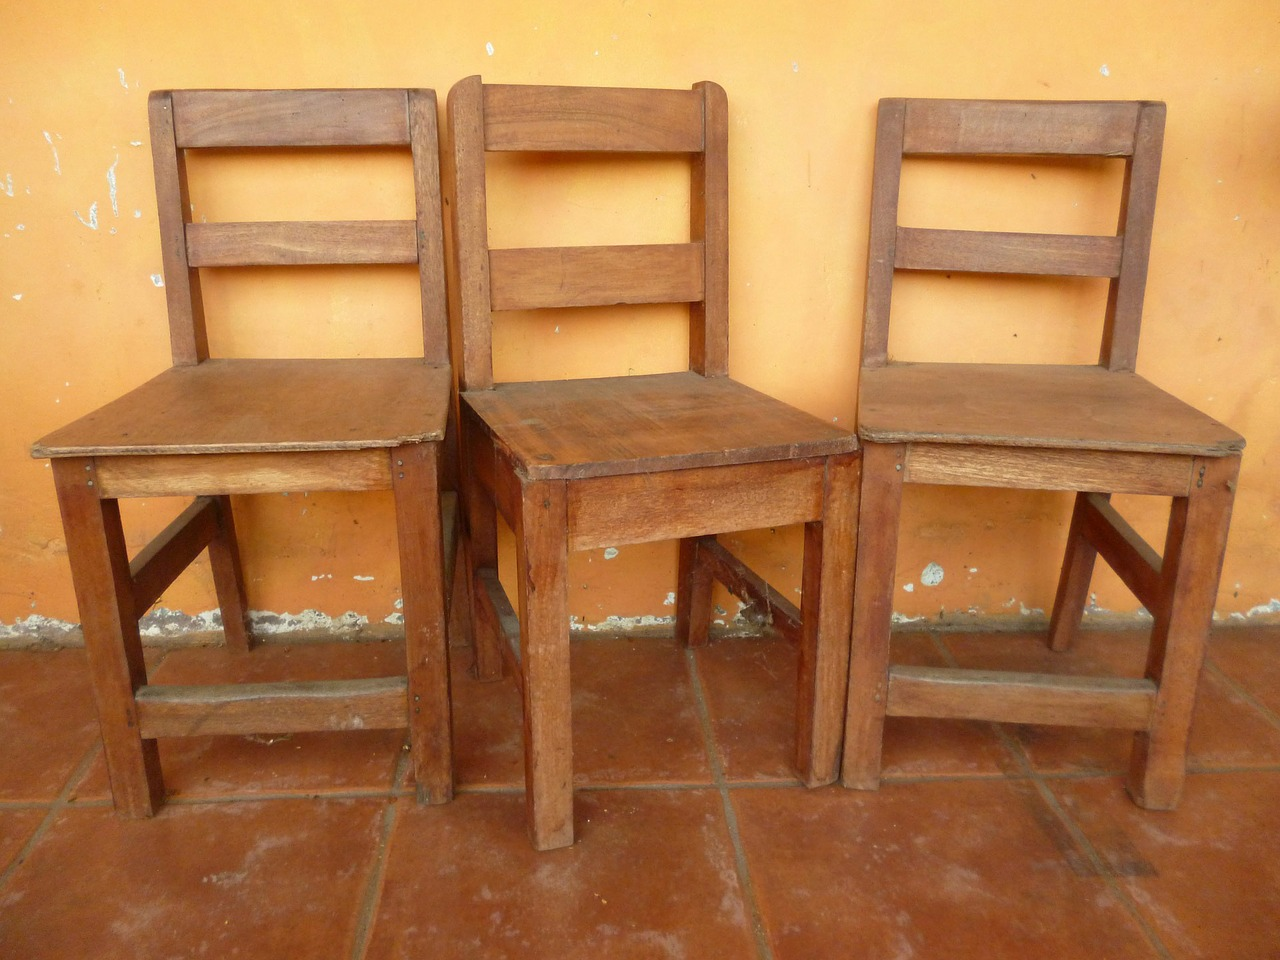 chairs-163887_1280